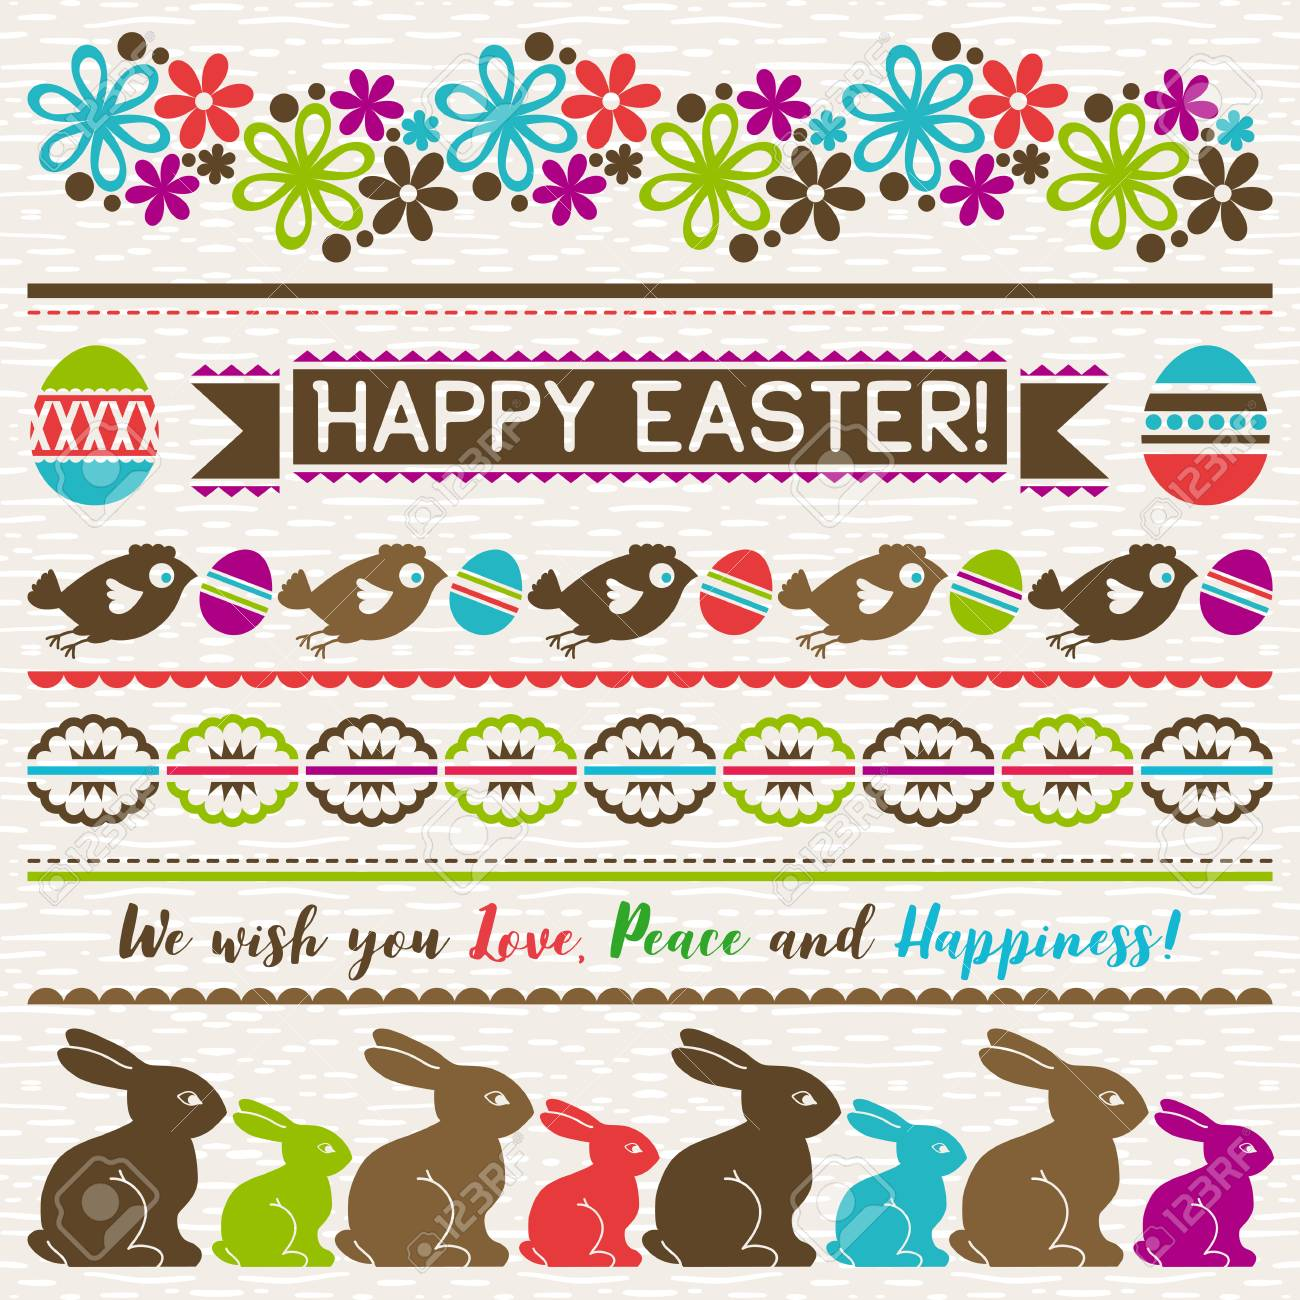 easter greetings cards with color easter eggs flowers and rabbits